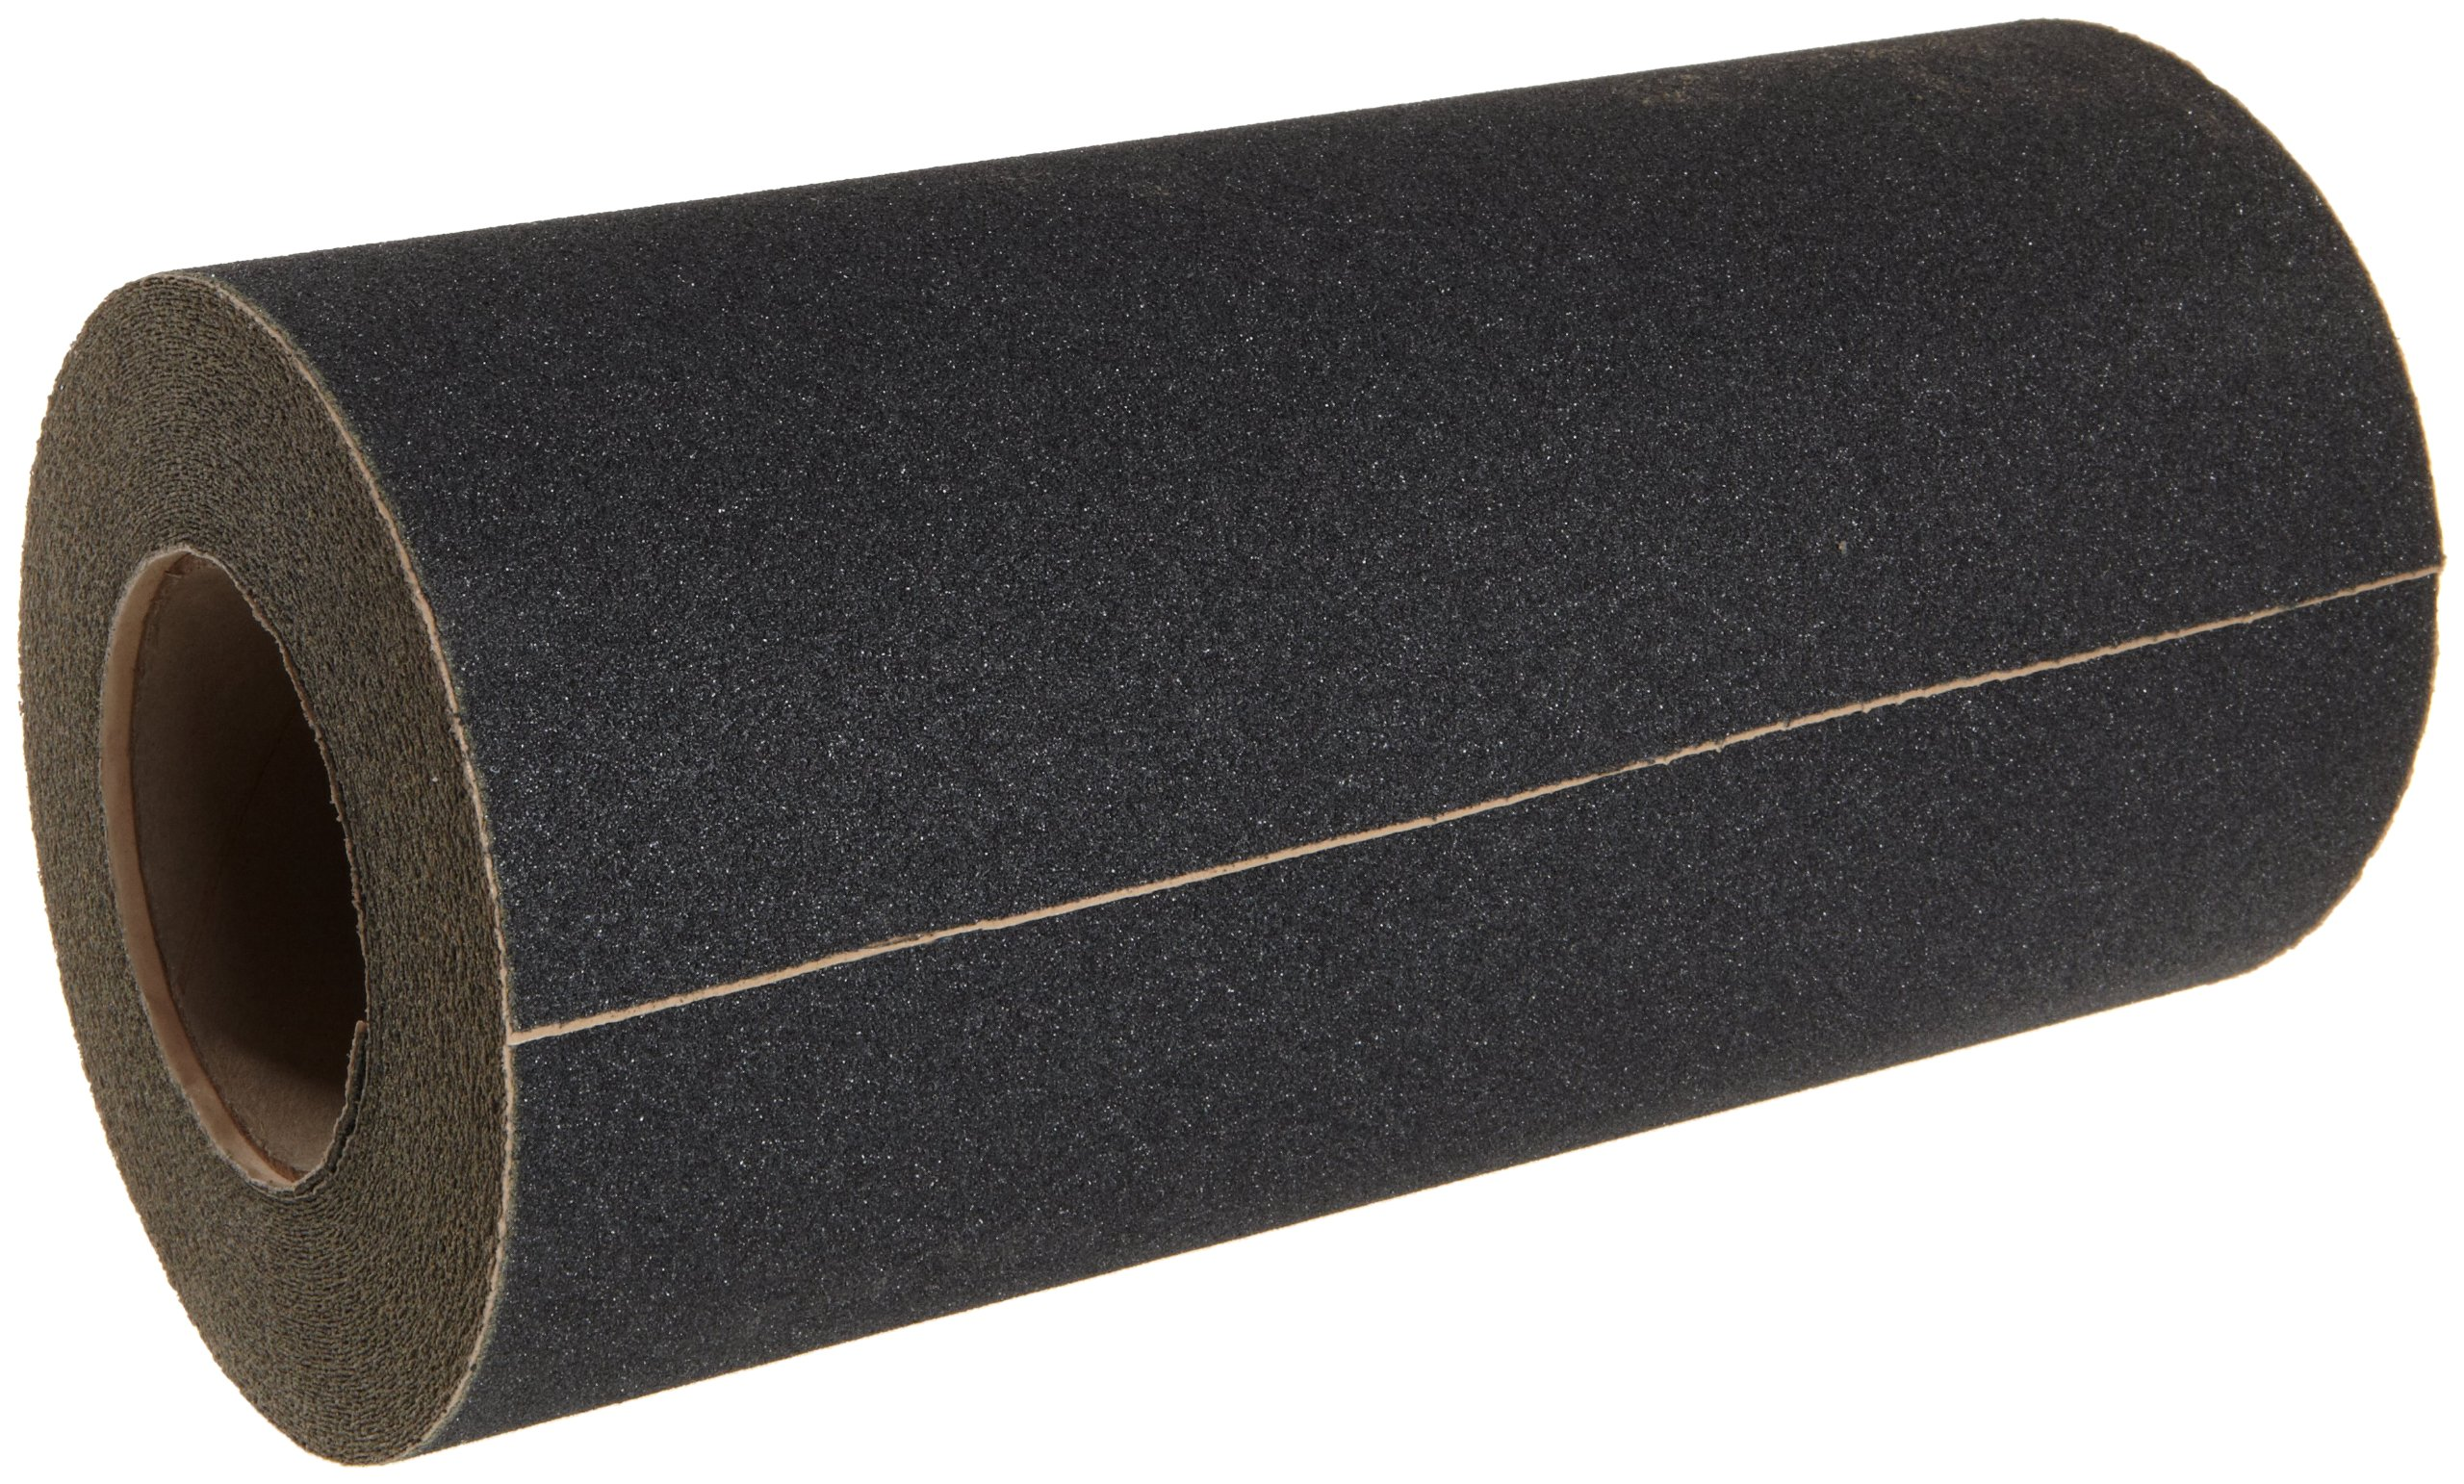 Jessup Safety Track 3100 Non-Slip High Traction Safety Tape (80-Grit, Black, 12-Inch x 60-Foot Roll)